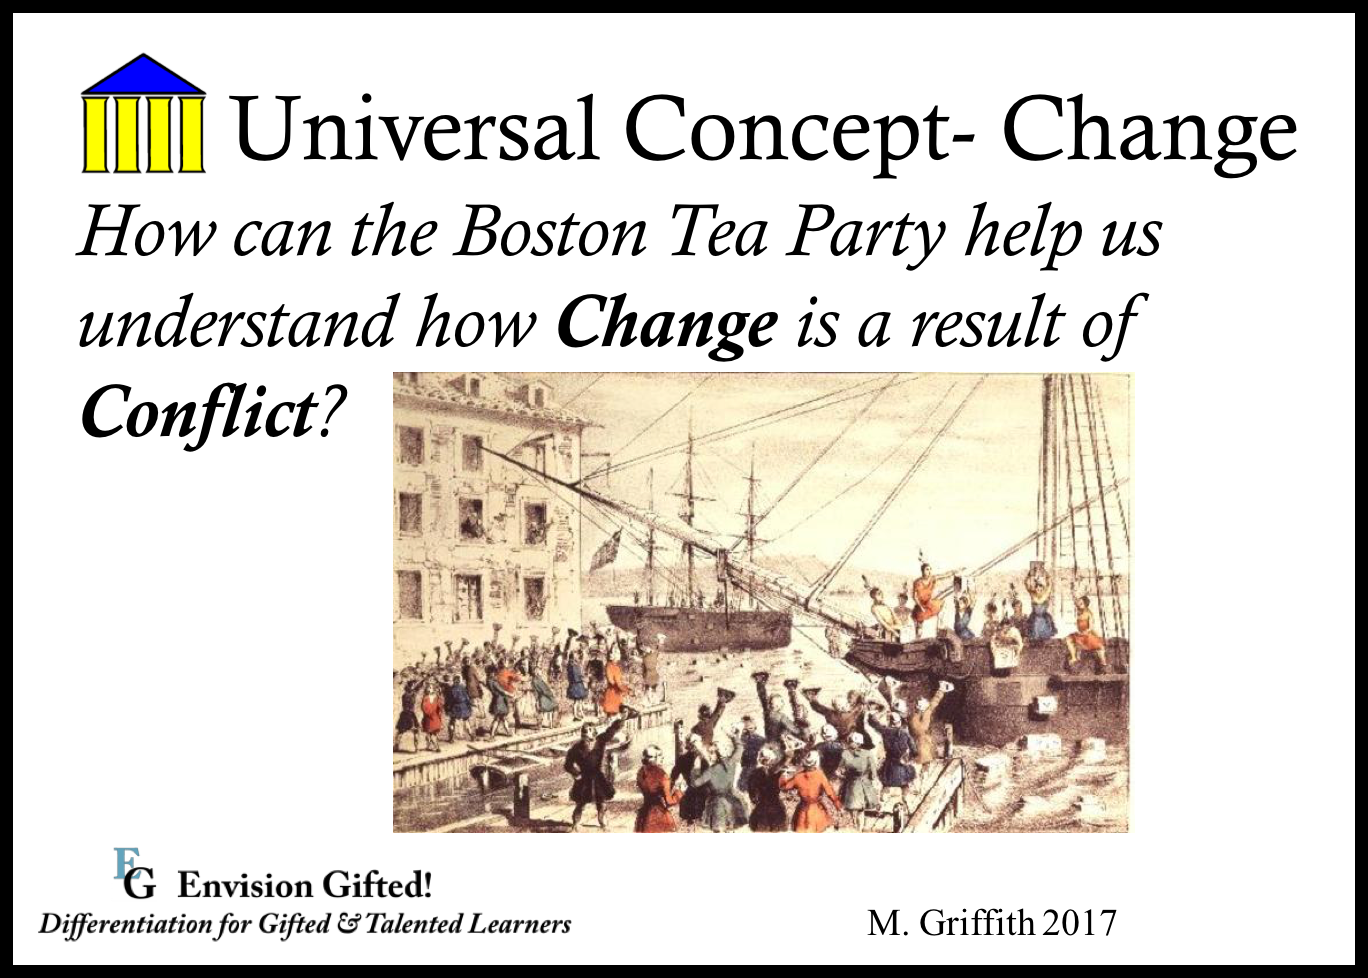 Envision Gifted. Universal Concept Change Results from Conflict